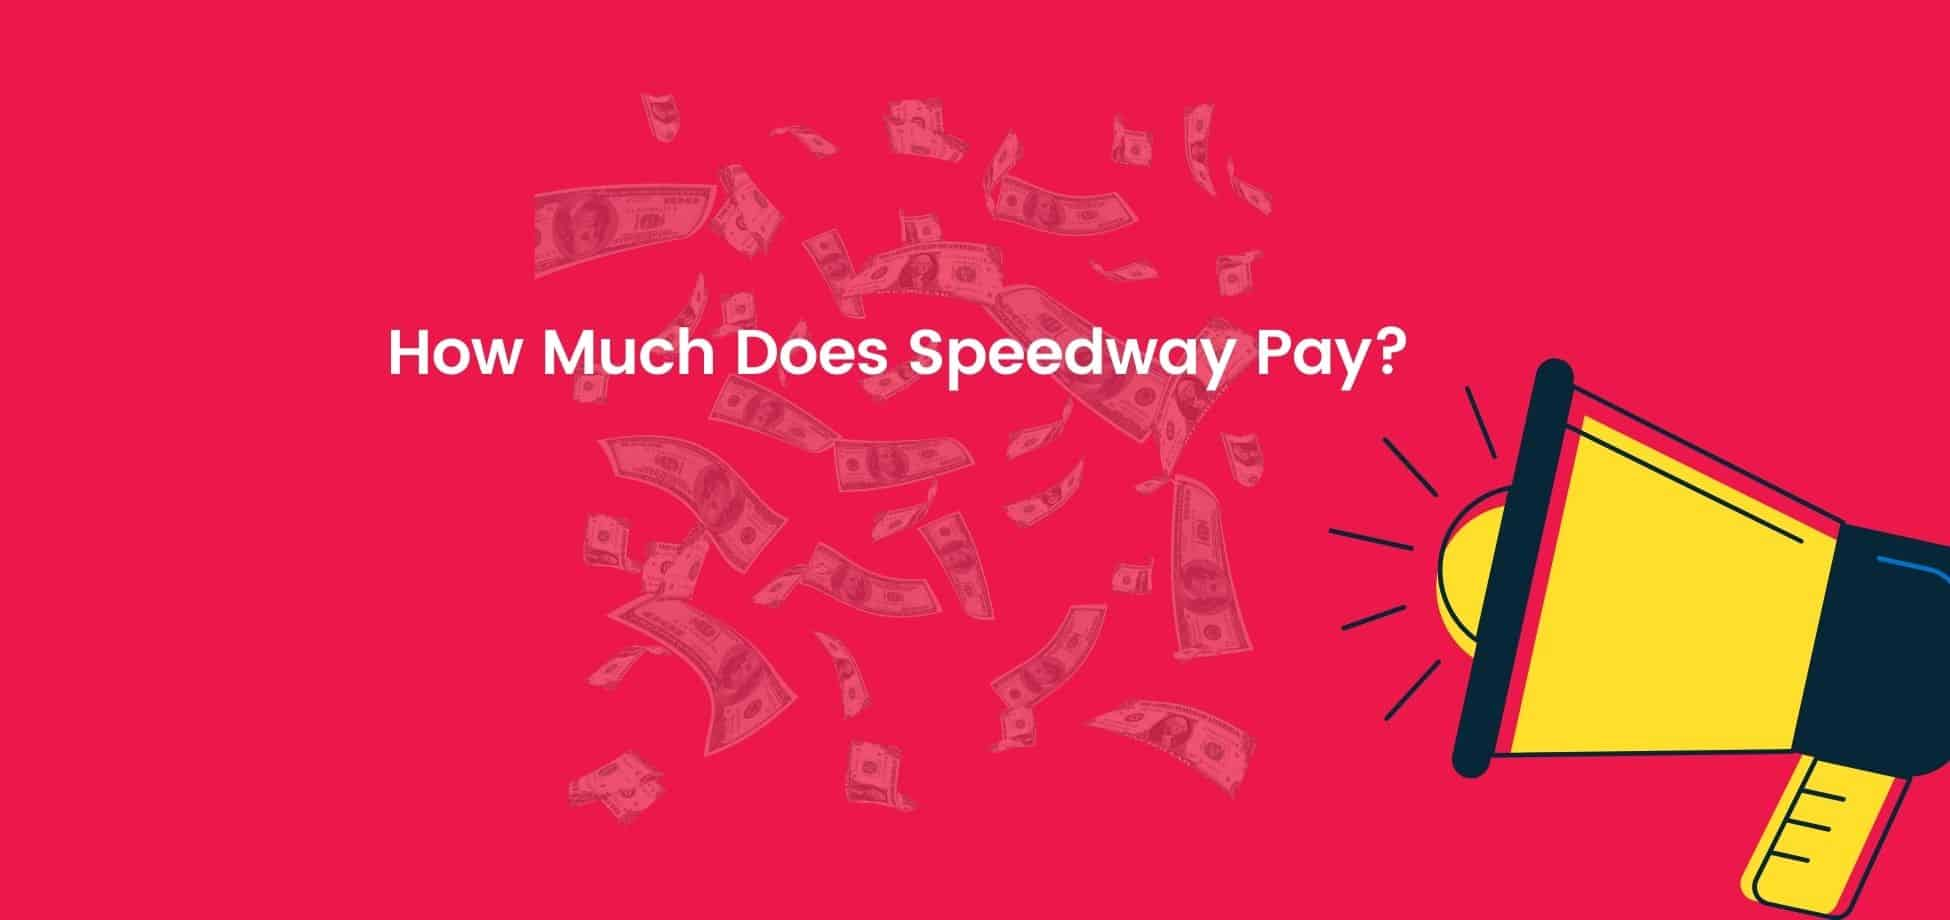 The Speedway pay for its hourly and salaried workers are fairly consistent with industry standards but the entry-level workers are paid poorly.